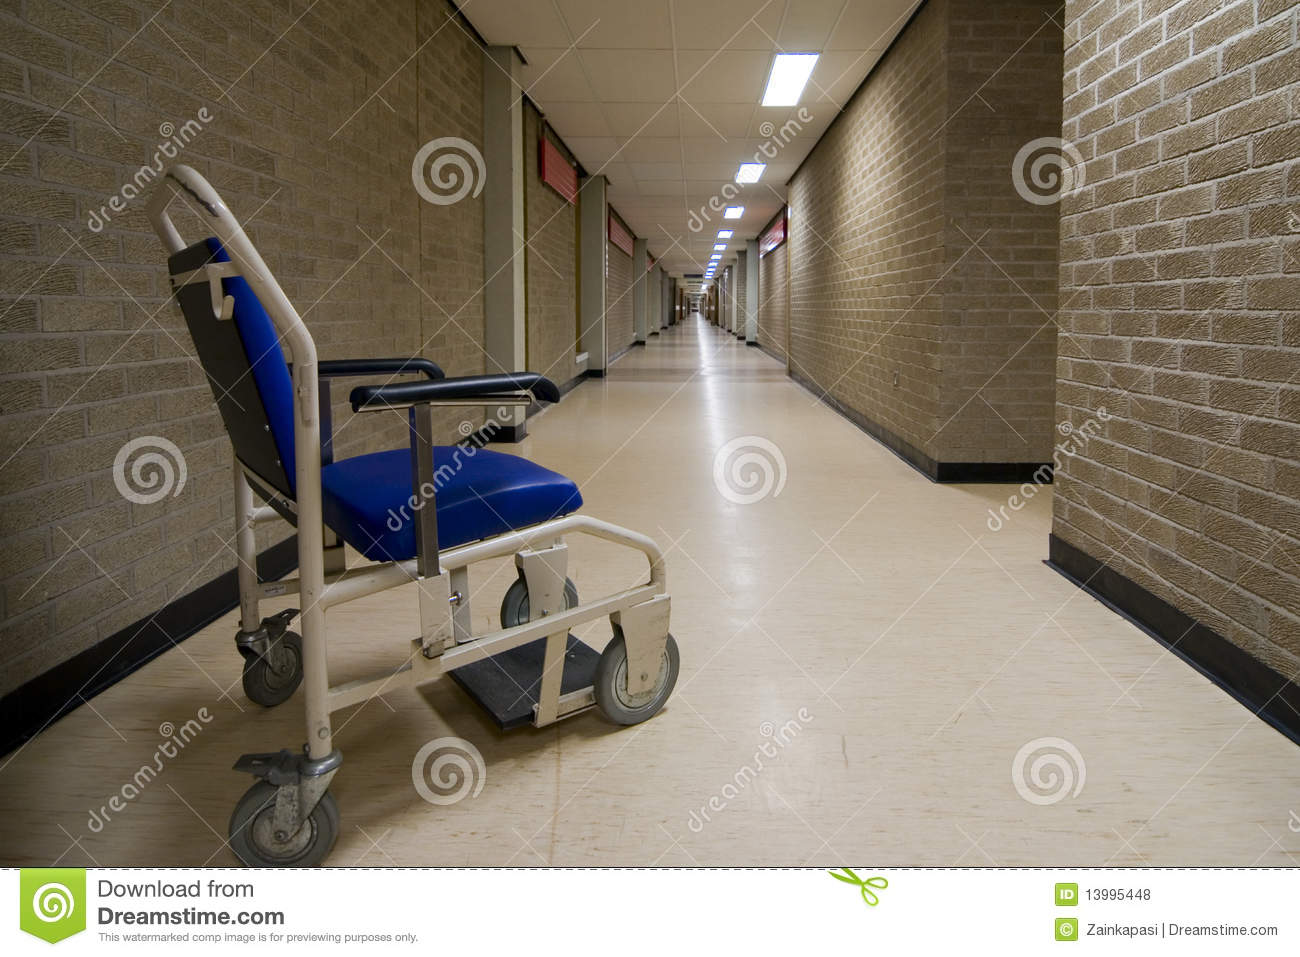 wheelchair nhs mickey mouse bean bag chair in an empty hospital corridor royalty free